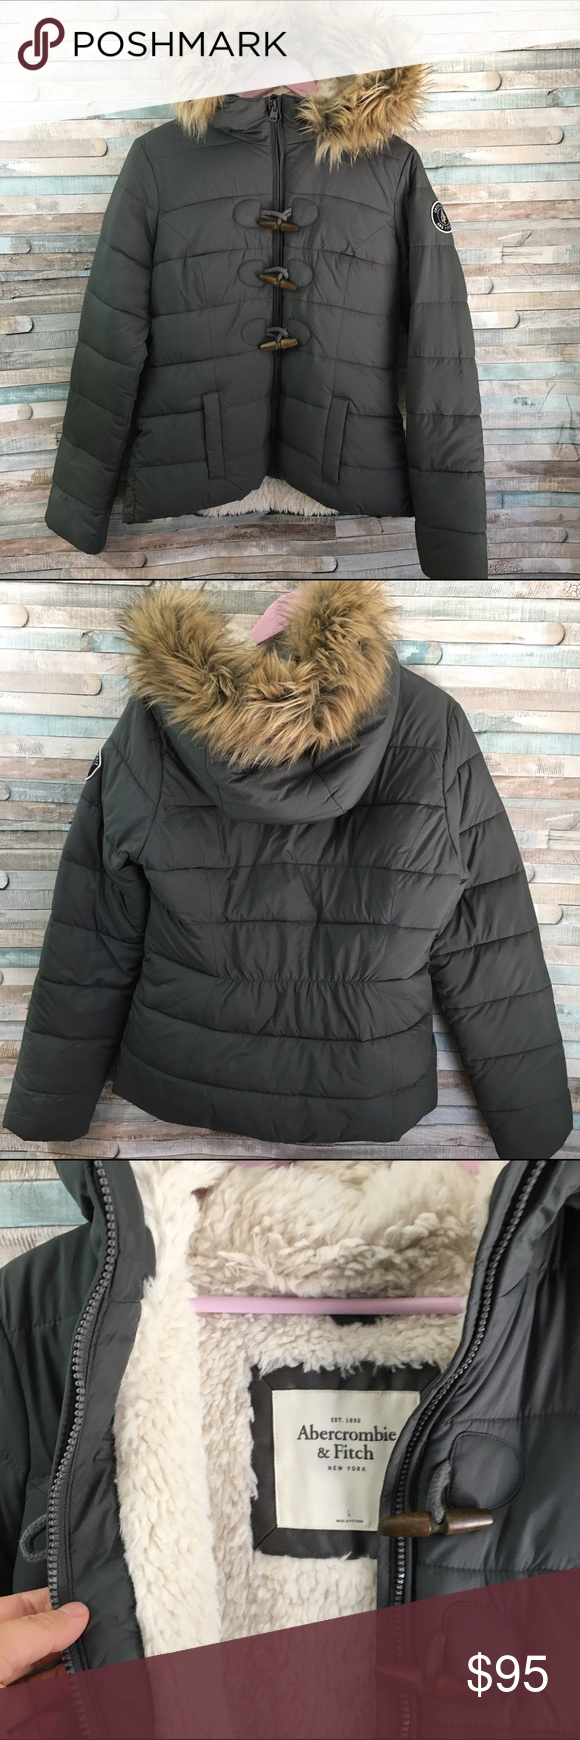 Abercrombie women's lined puffer coat L Gray puffer coat lined with a super soft Fur material.  Fur lined hood, fur is removable.  In excellent like new condition from a smoke free home size Large. Abercrombie & Fitch Jackets & Coats Puffers